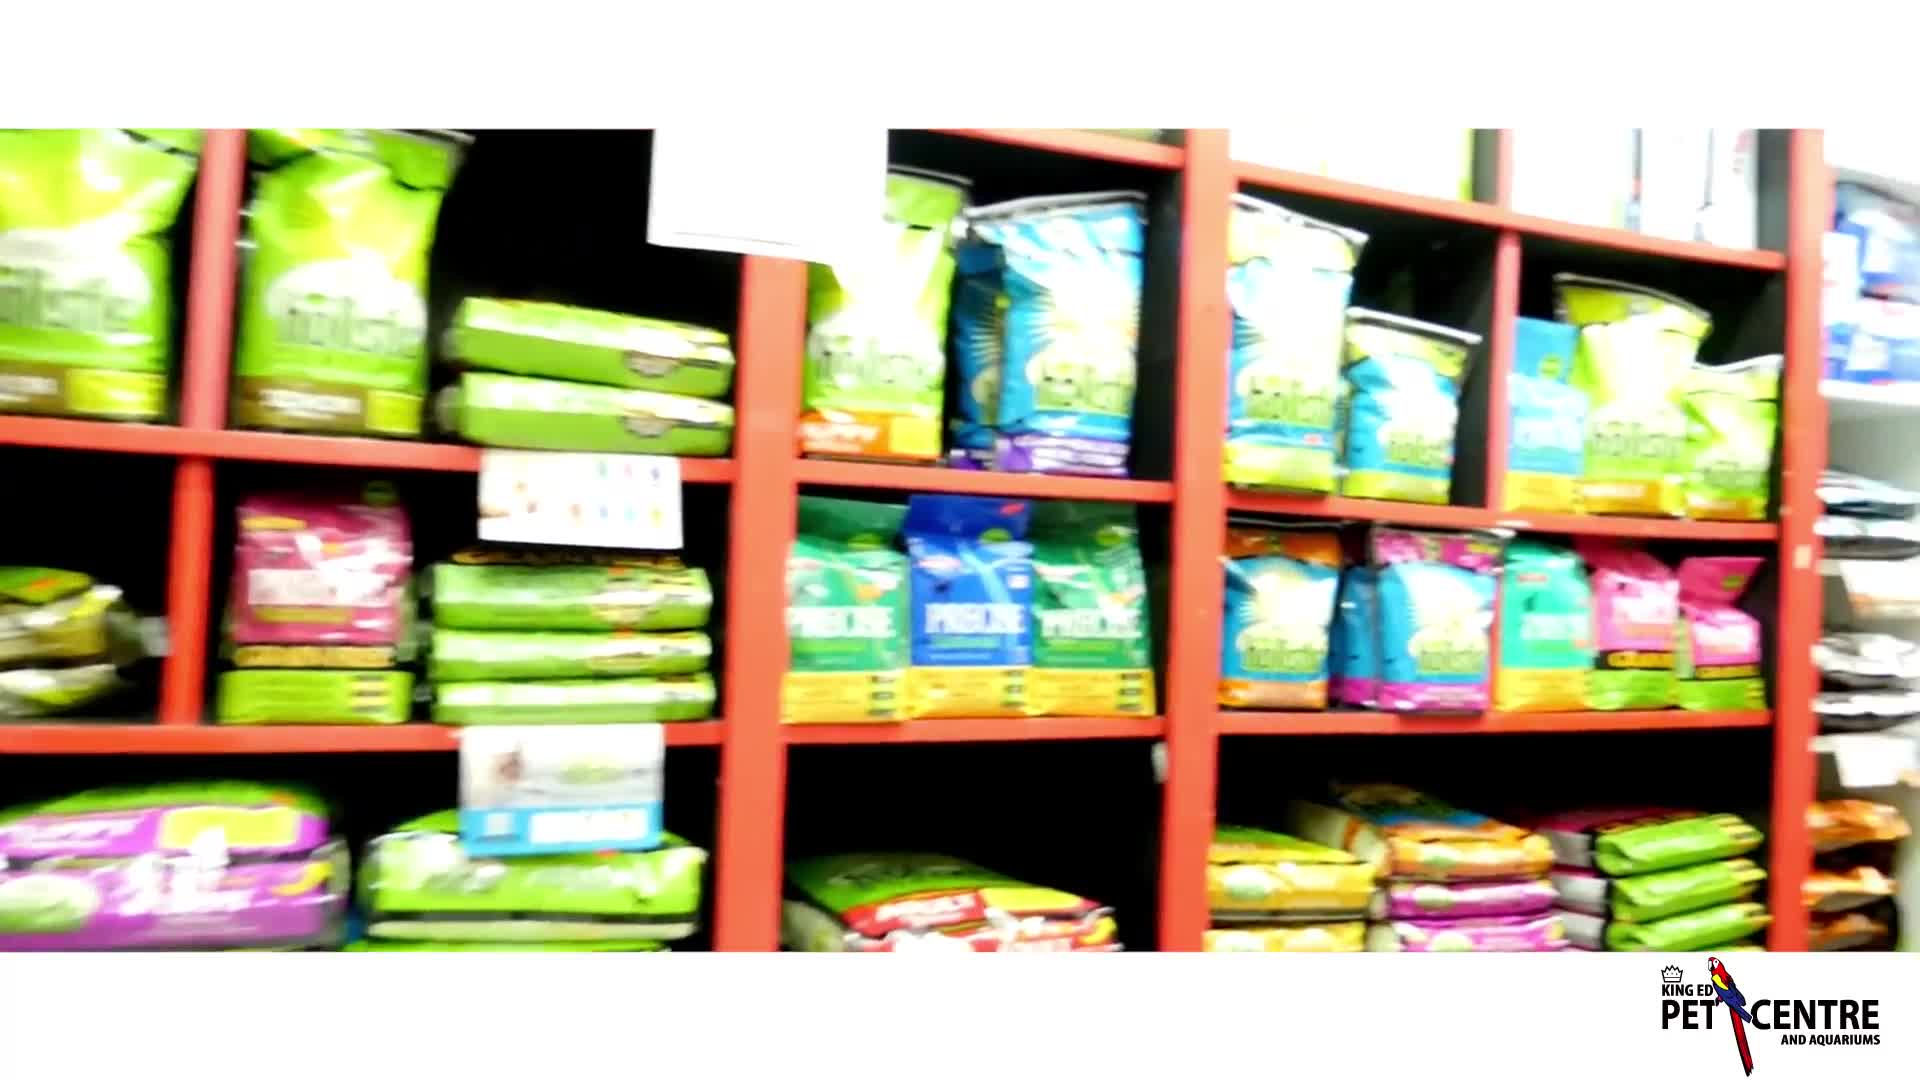 King Ed Pet Centre Ltd - Pet Food & Supply Stores - 604-525-4955